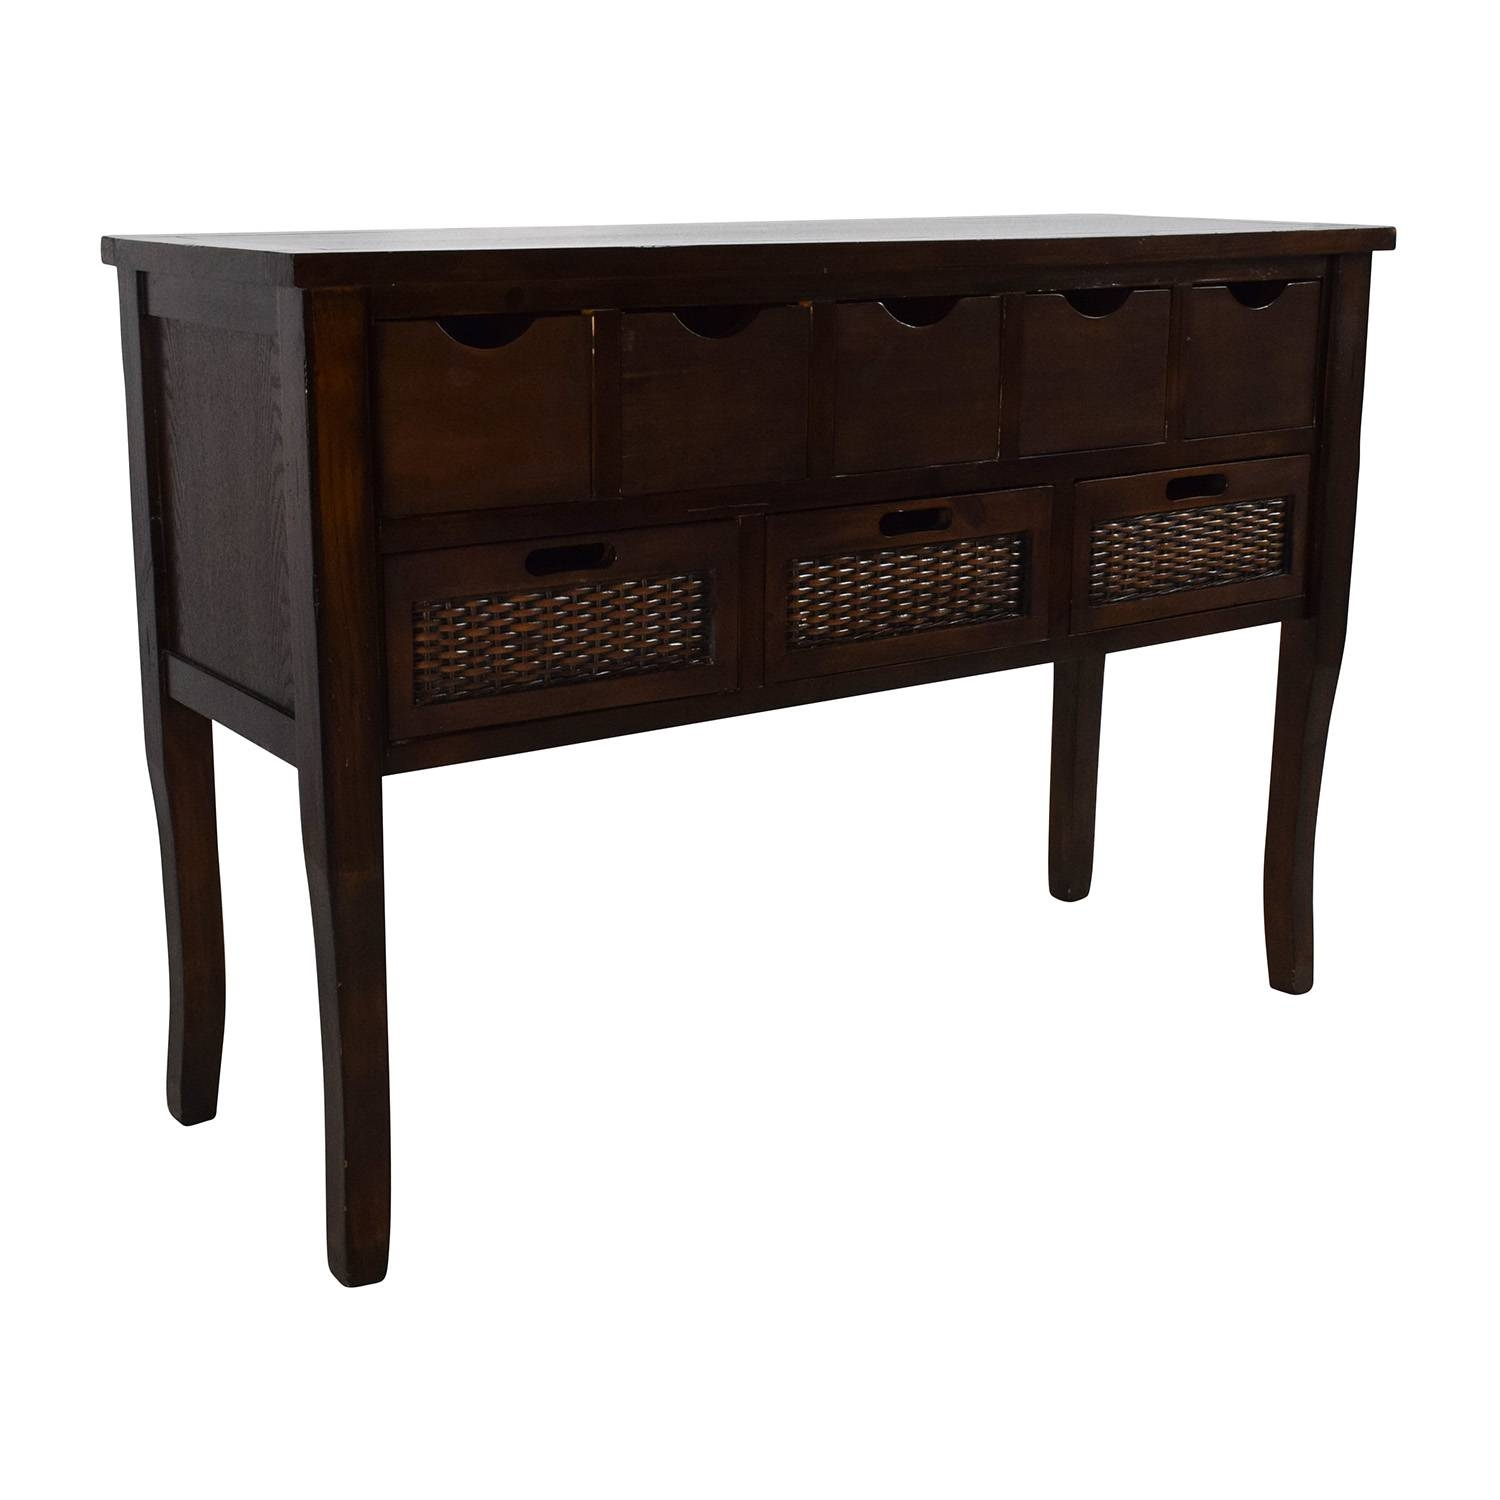 65% Off - Unknown Brown Wood Multi Drawer Sideboard / Storage for Multi Drawer Sideboards (Image 1 of 30)